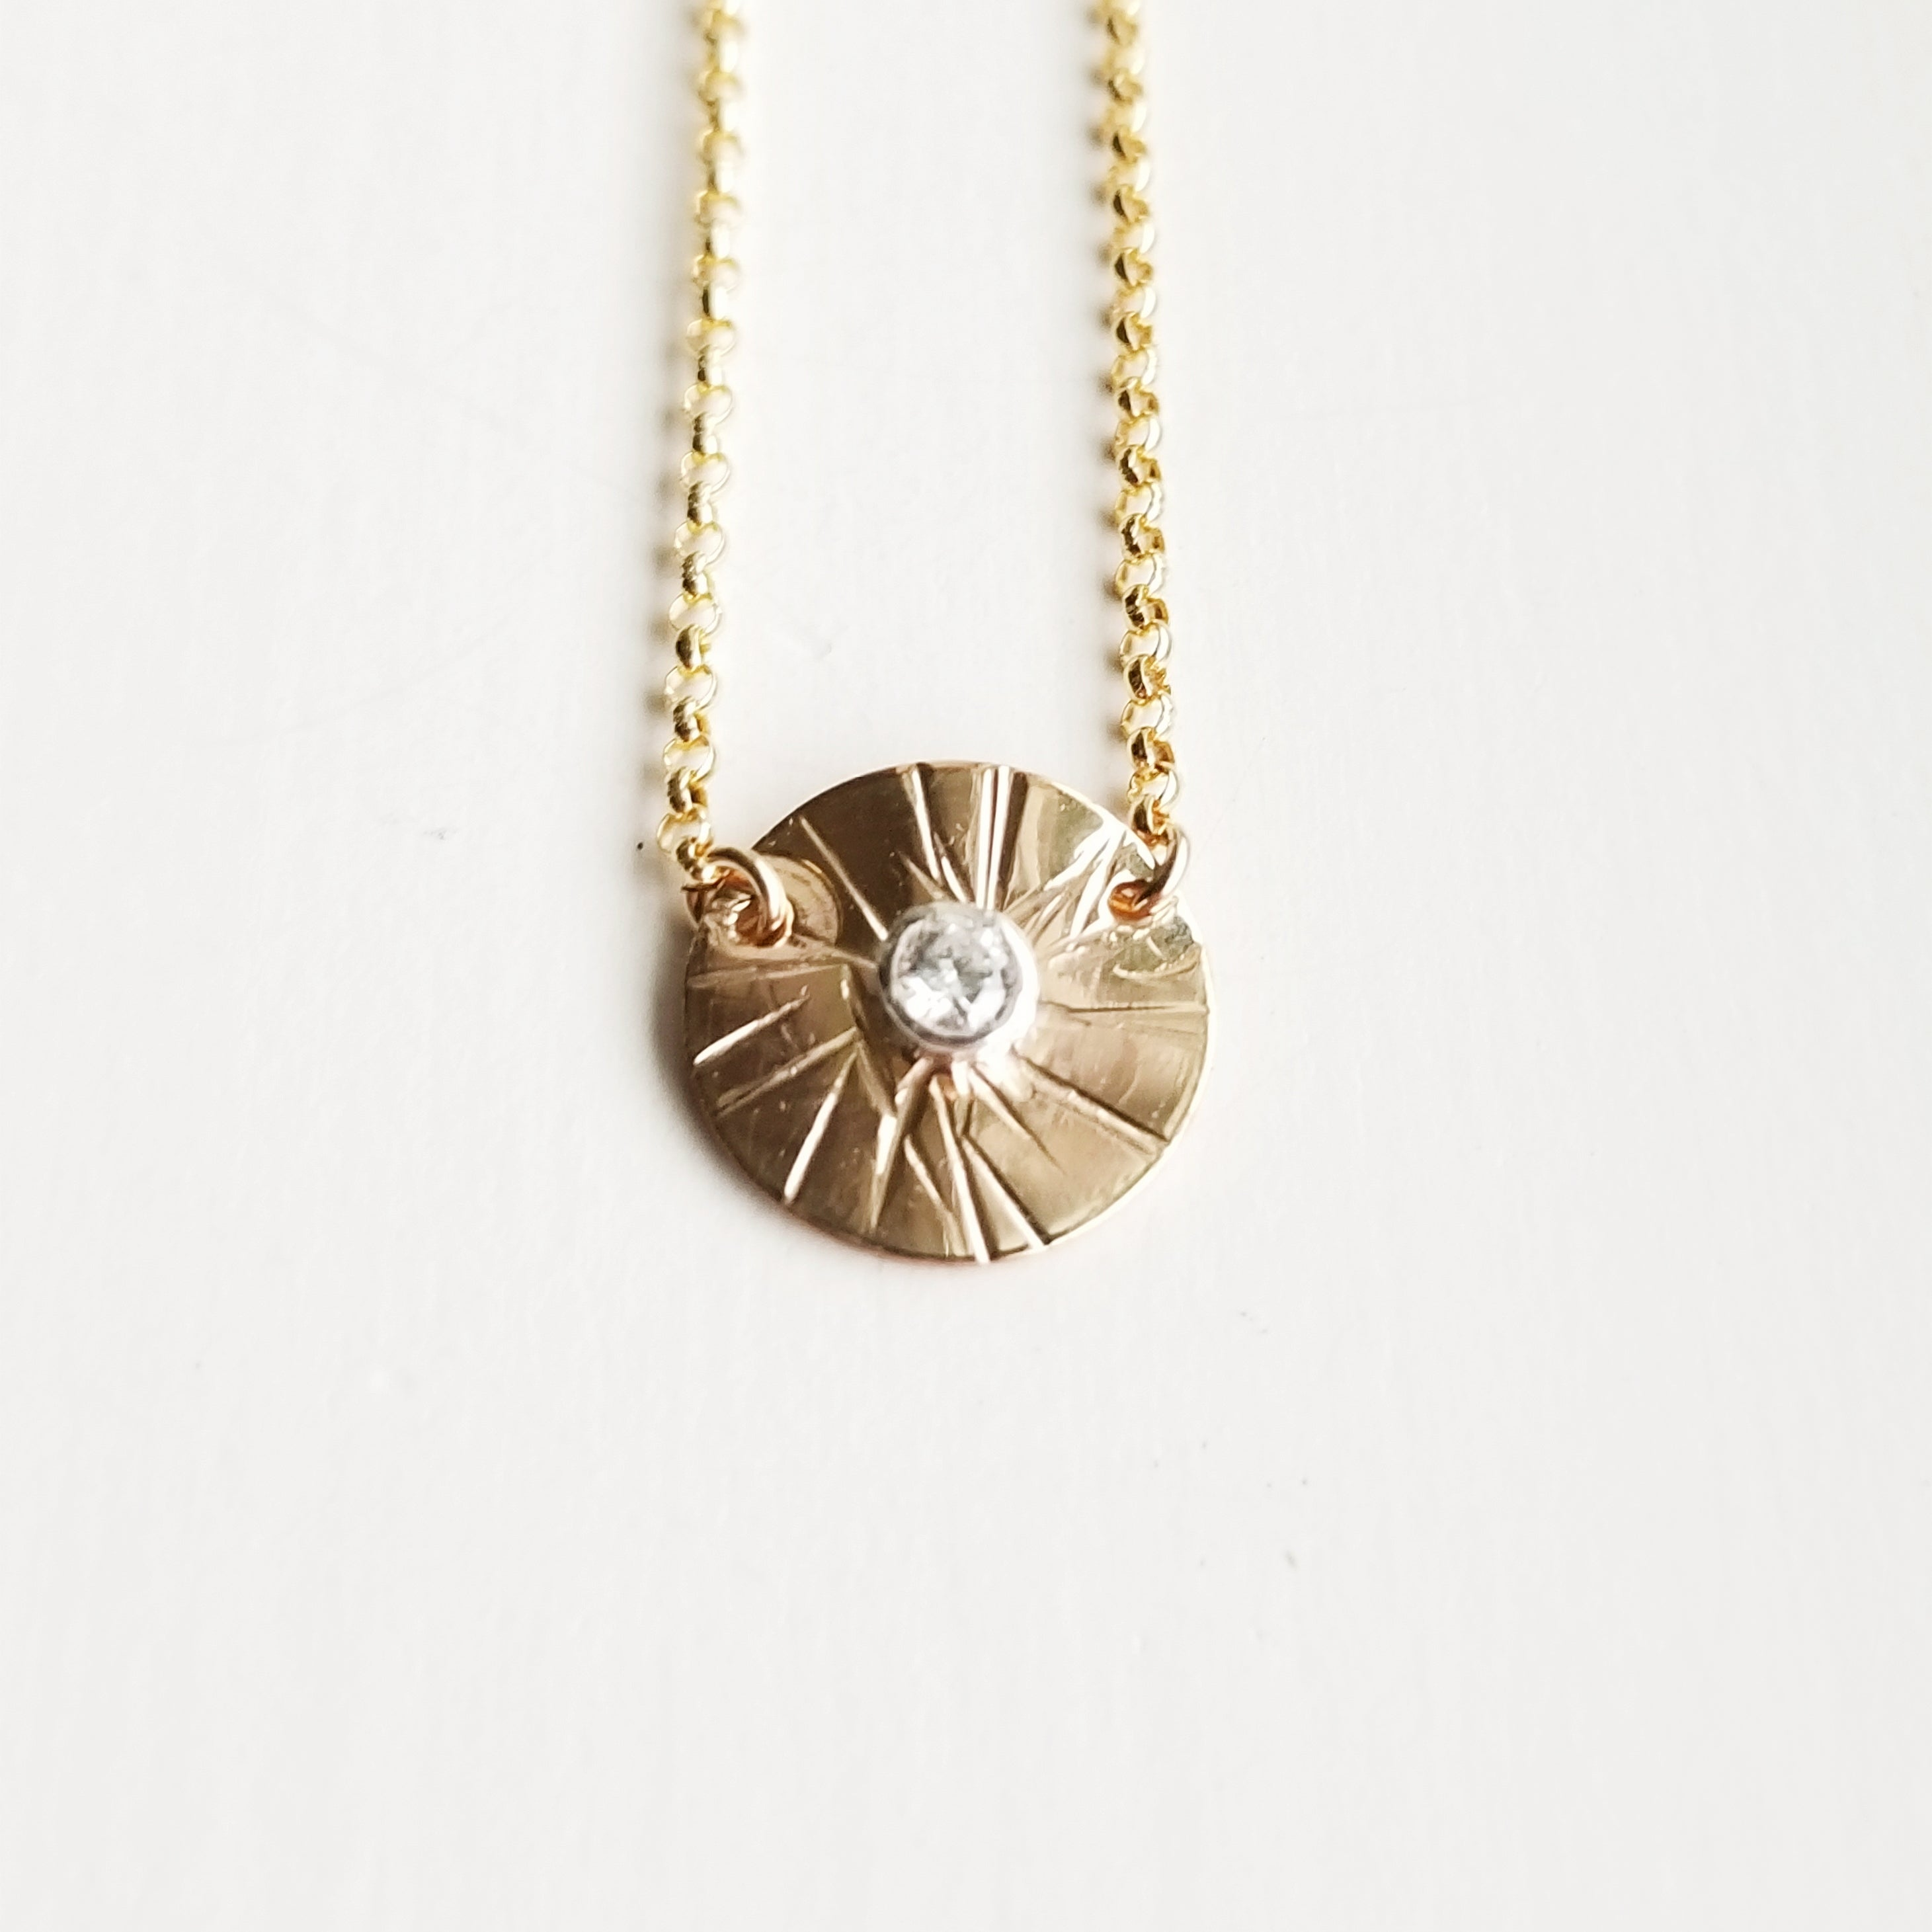 Sungazer necklace - 14k yellow gold filled - small